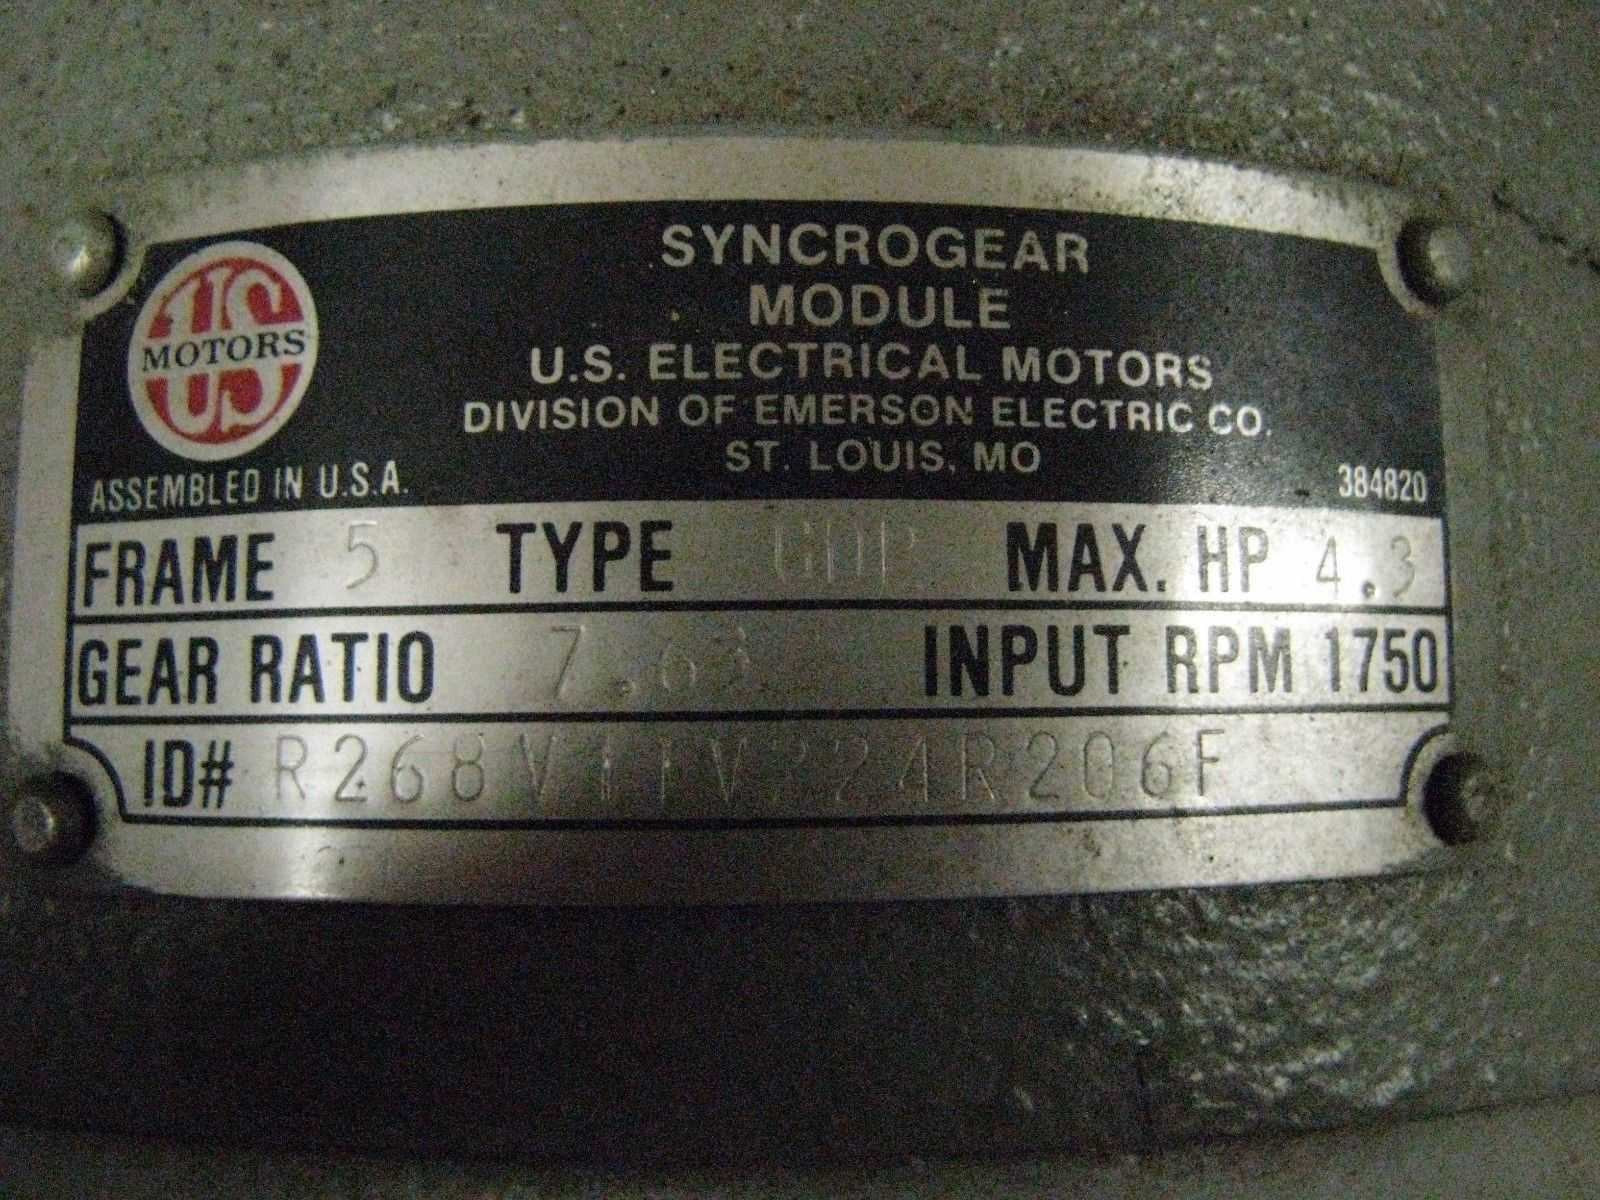 Us electric syncrogear motor 1 hp 7631 and 50 similar items us electric syncrogear motor 1 hp 7631 ratio 230460 publicscrutiny Image collections